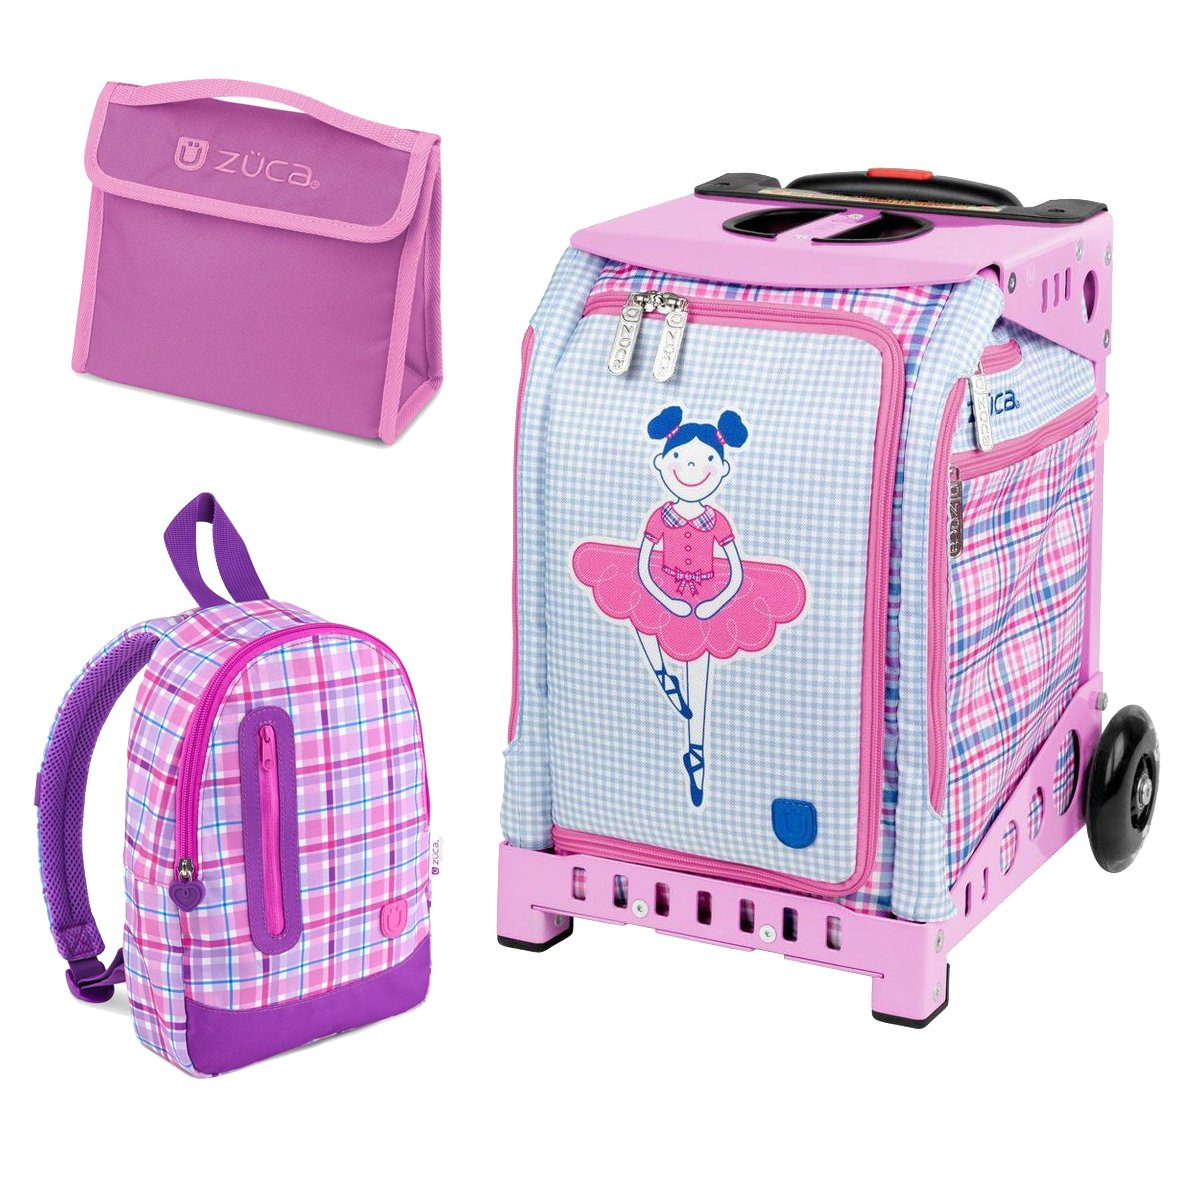 Zuca Mini Ballerina Bag with Frame Snack Pouch and Explorer Backpack (Pink Frame/ Pink Backpack)